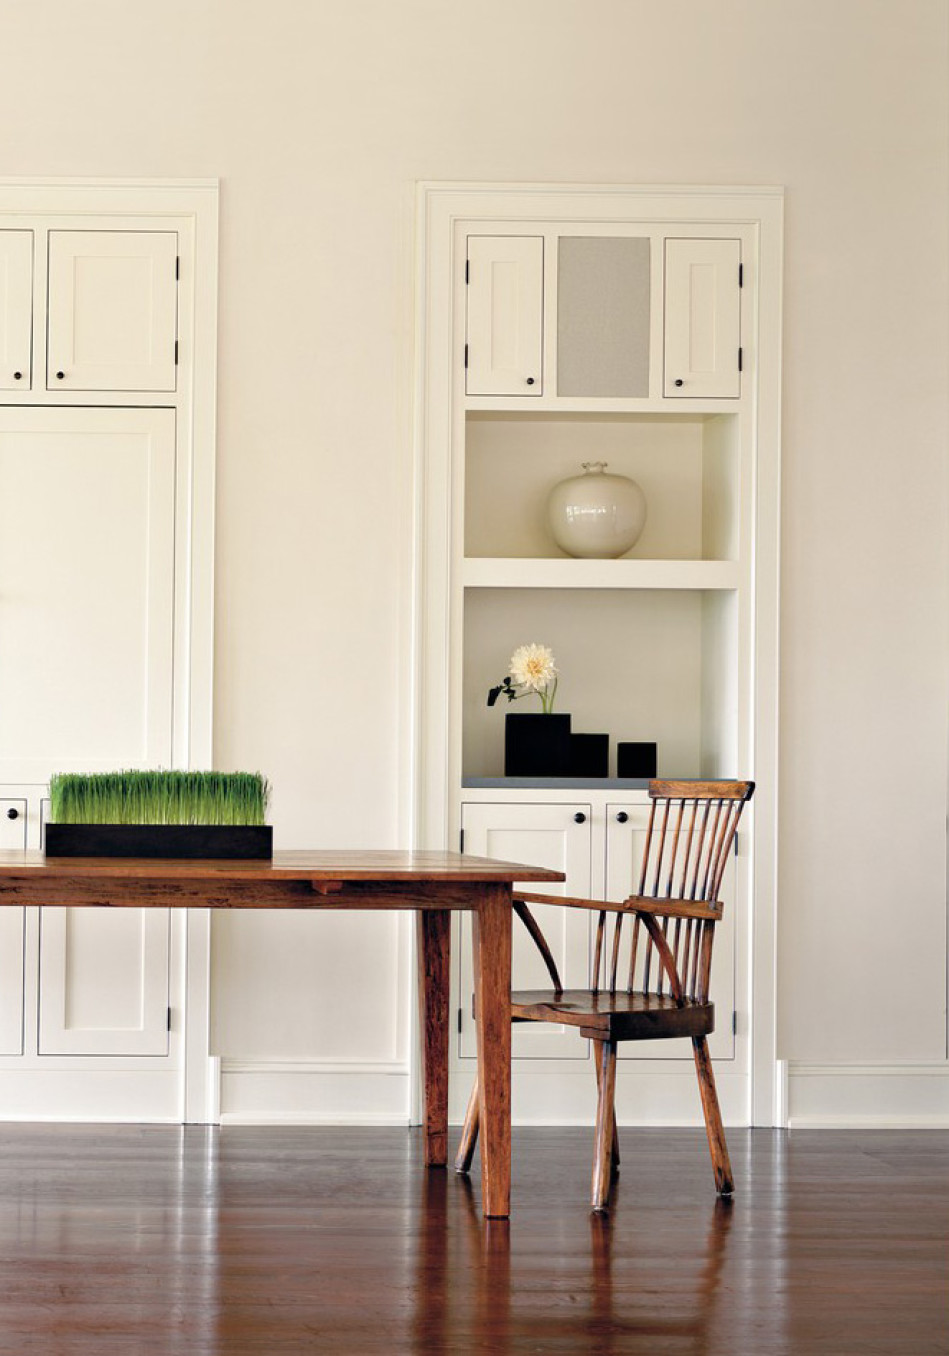 Eileen Fisher's home photo by Gentl & Hyers